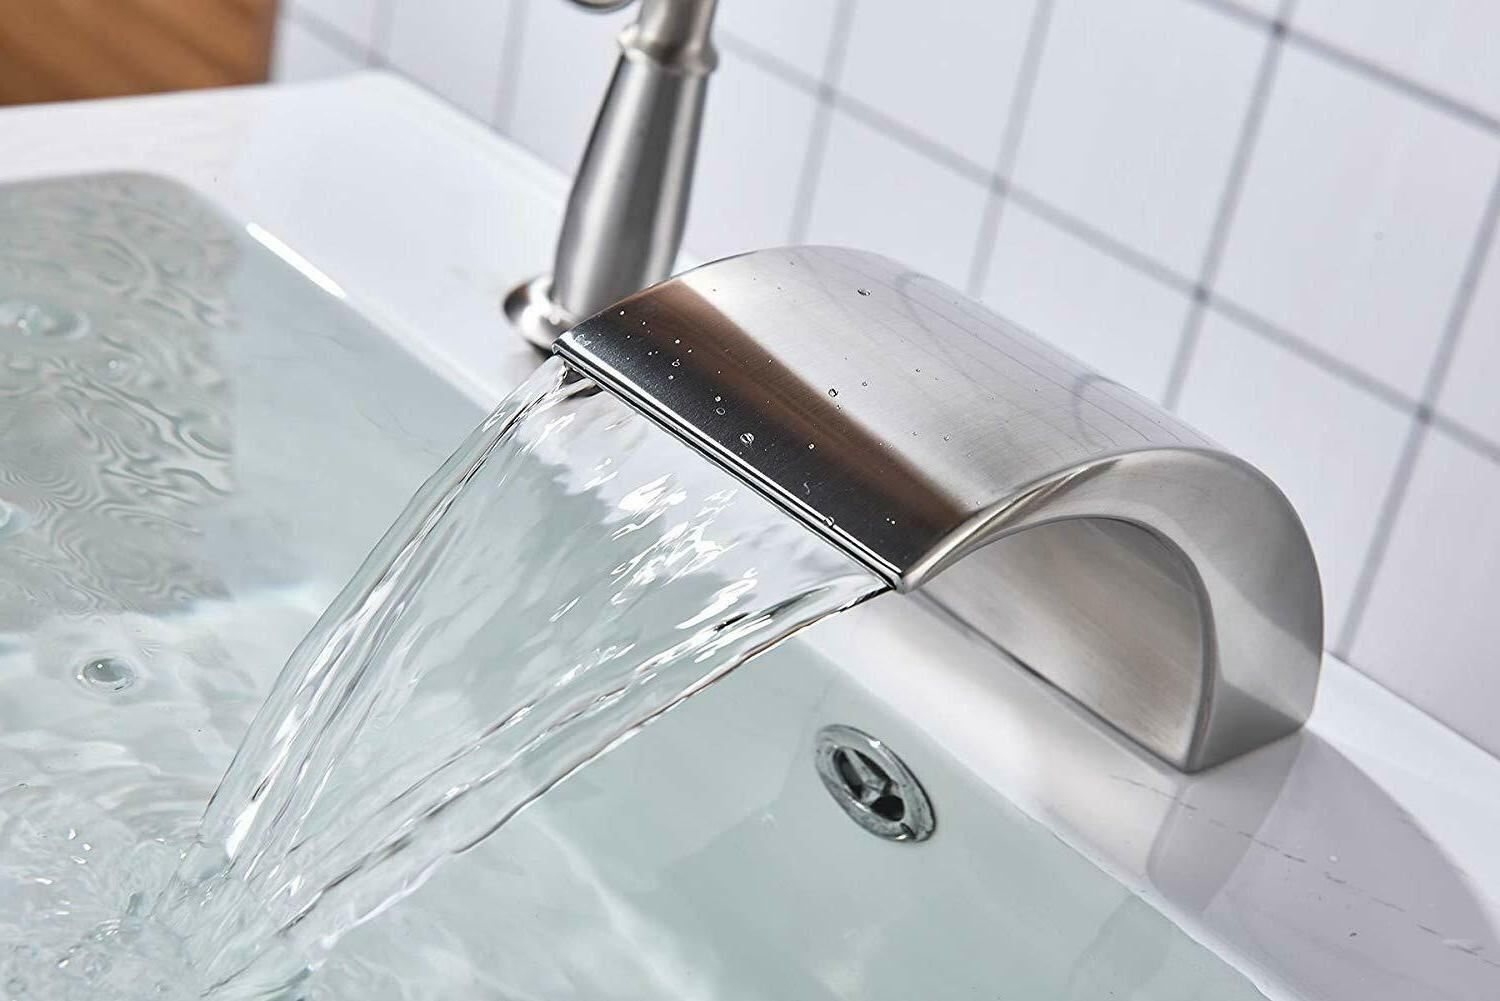 Waterfall Filler With Hand Sprayer Mixer Brushed Nickel